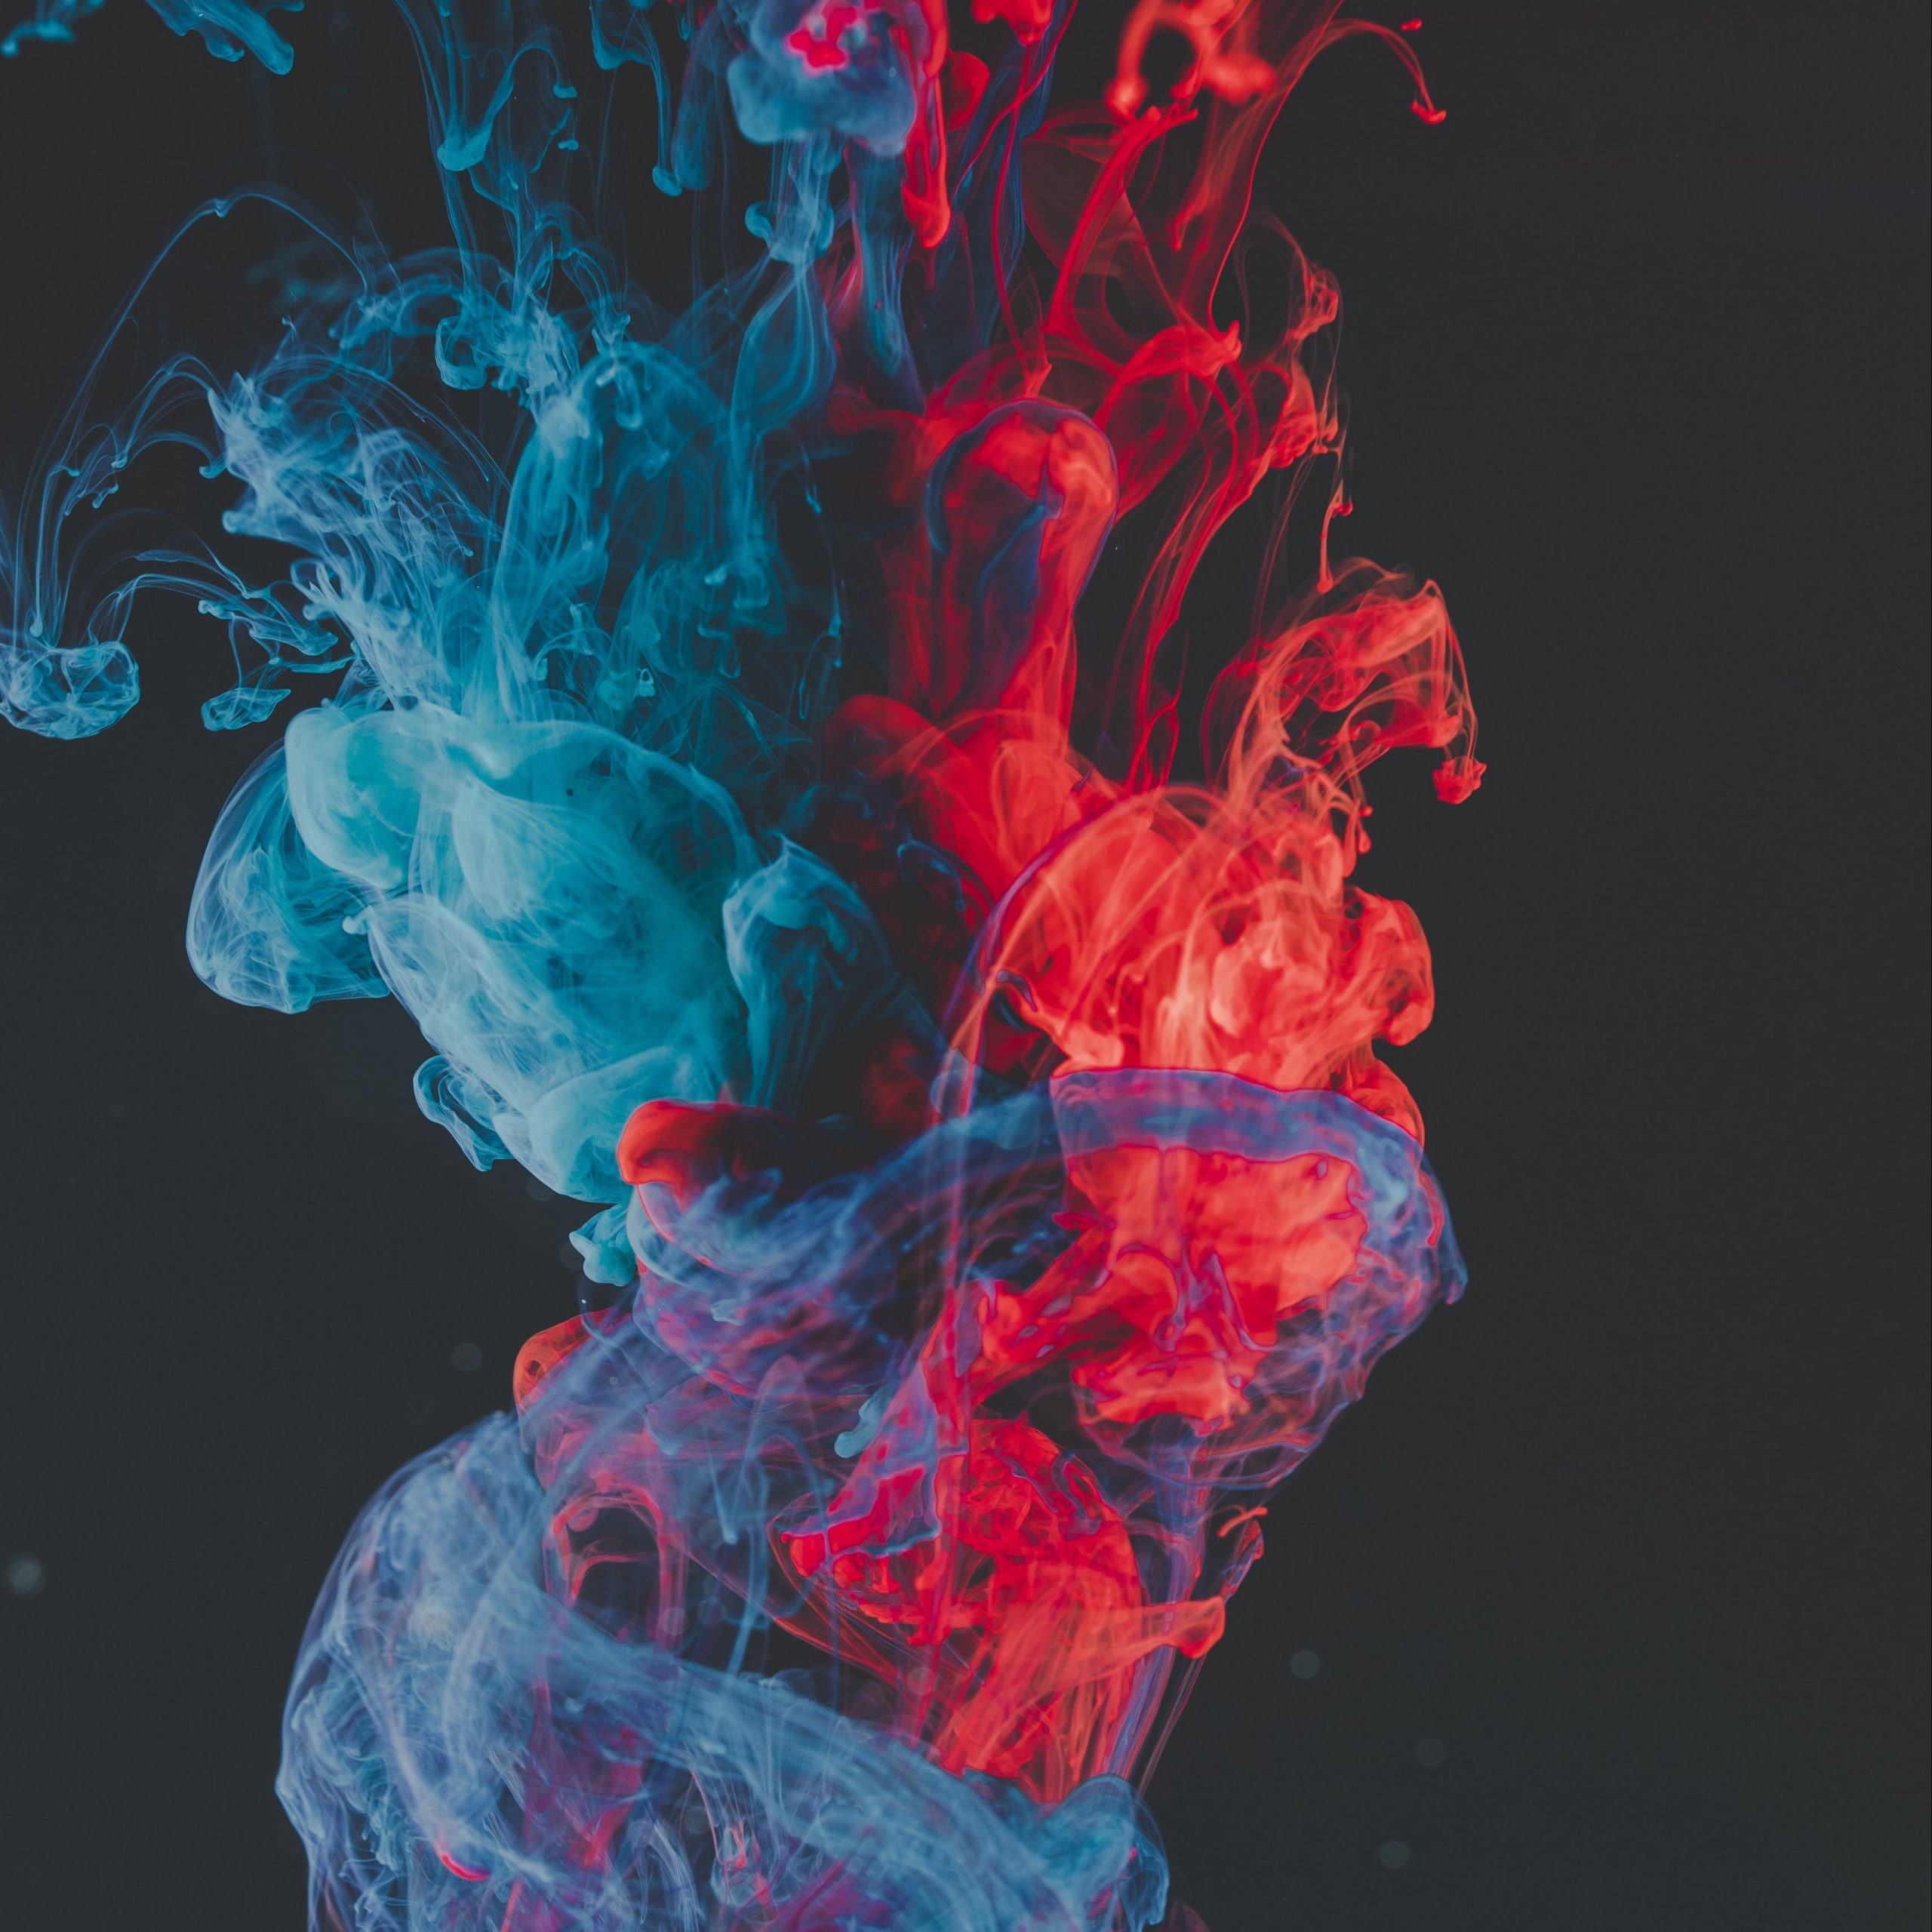 Abstract 4K Wallpaper For Tablet Apple Free Download